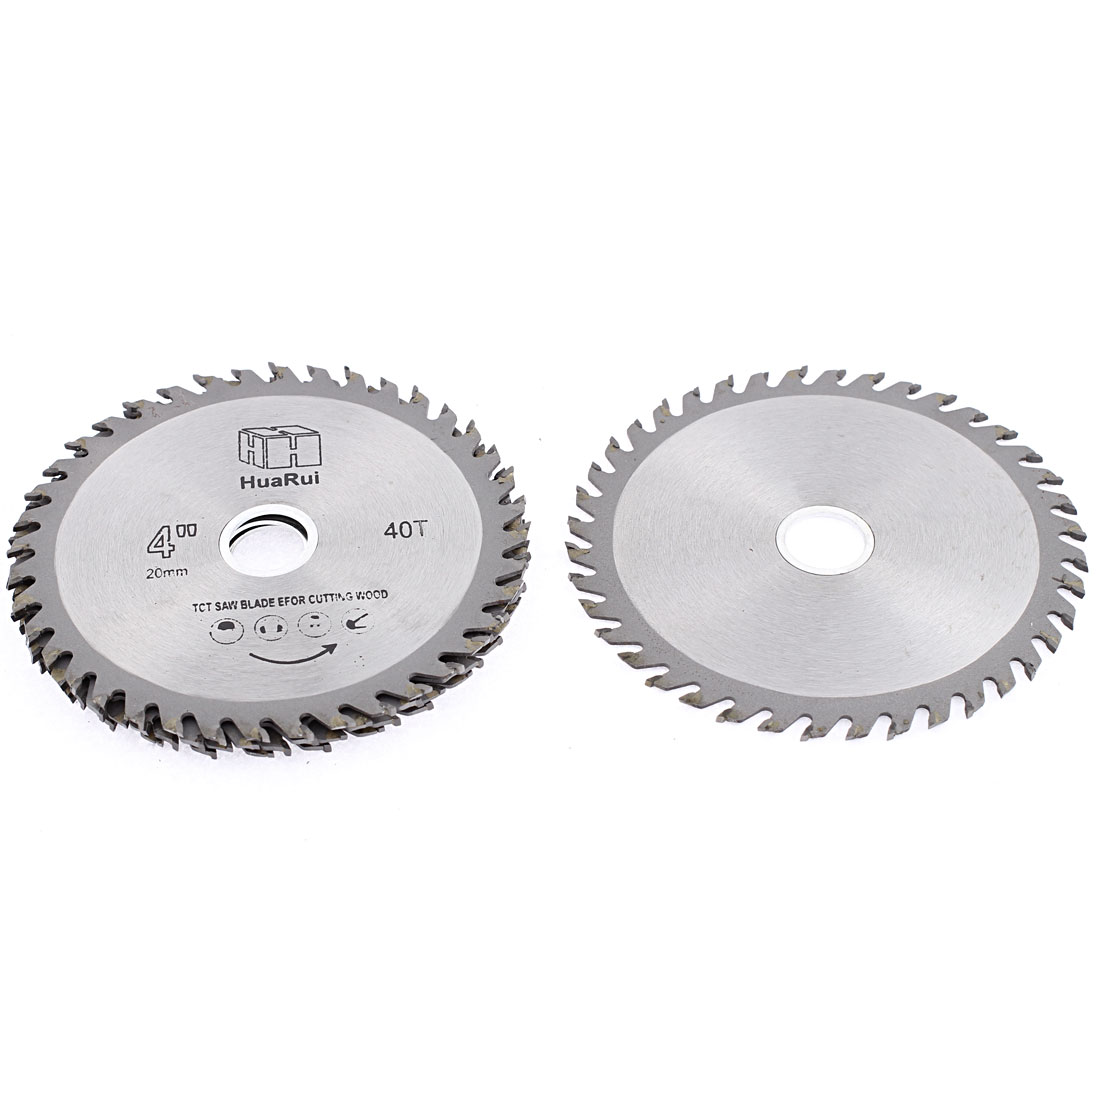 5 Pcs 110mmx20mmx1mm 40 Teeth Circular Cutting TCT Saw Cutter Hand Tool